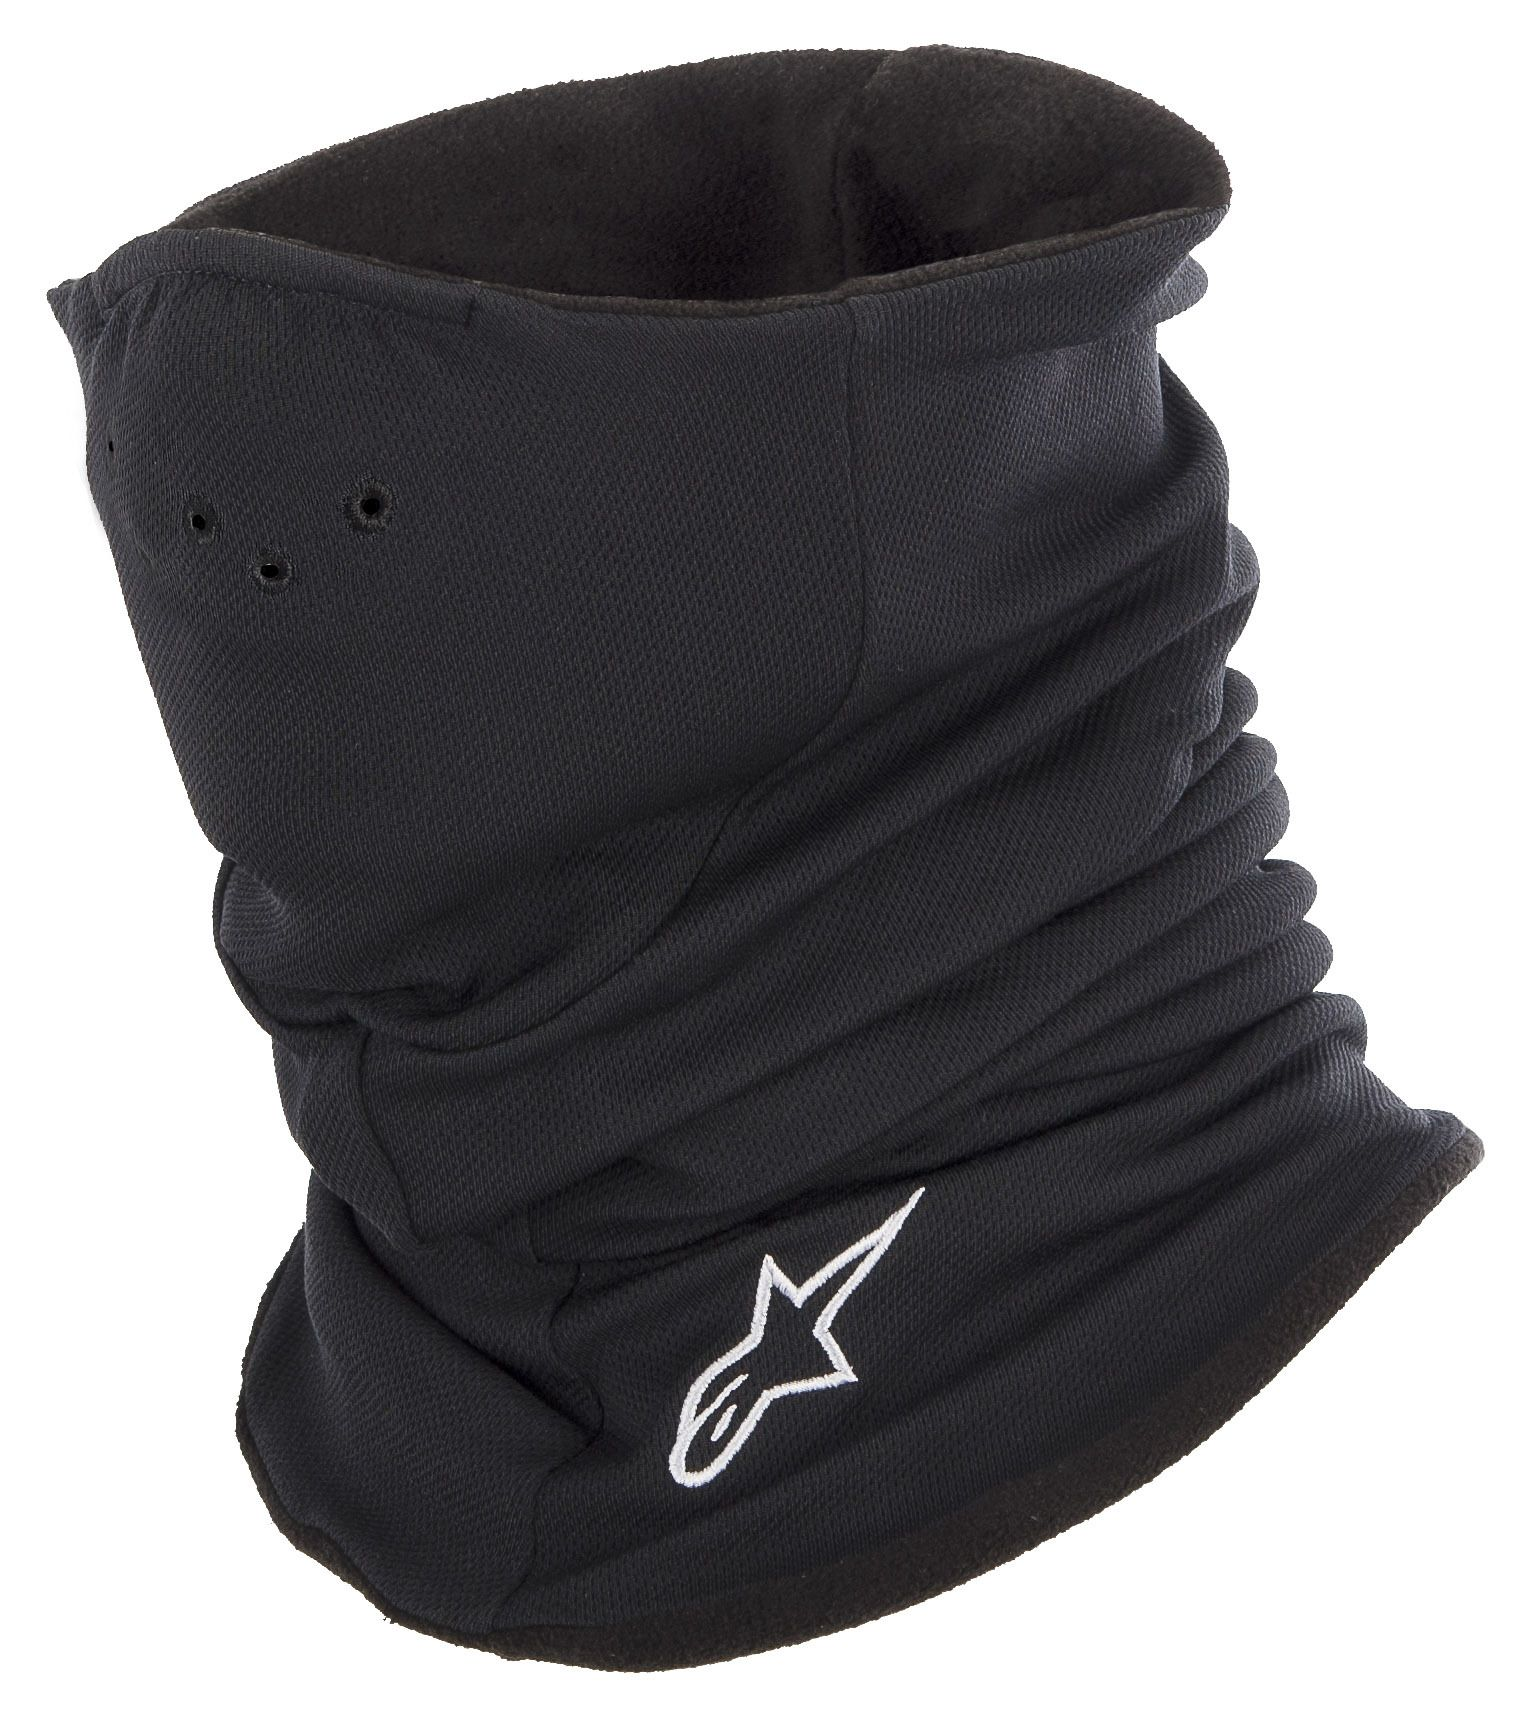 Alpine Motorcycle Gear >> Alpinestars Tech Neck Warmer - RevZilla